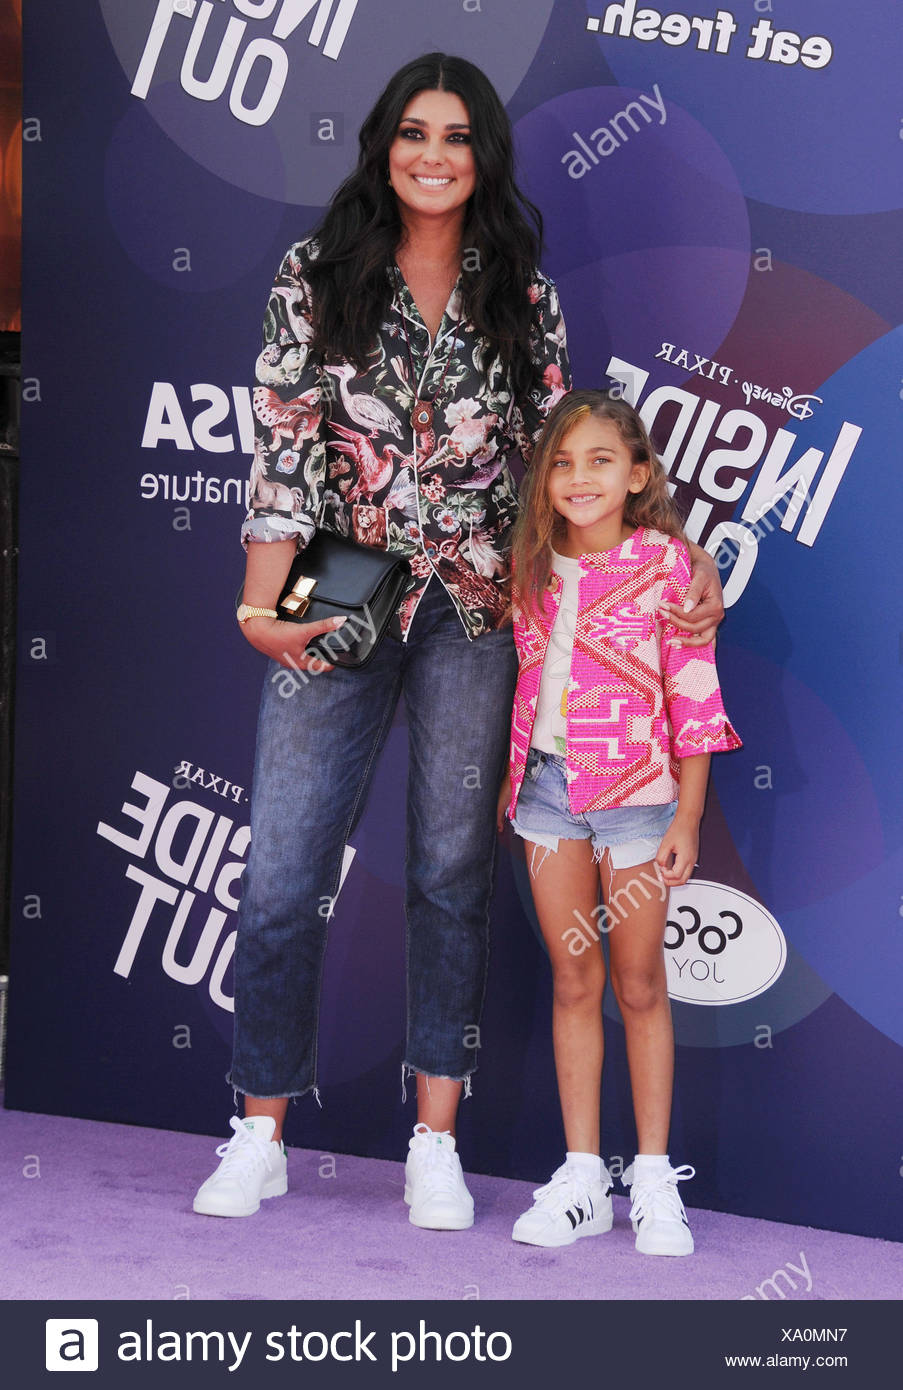 Fashion designer Rachel Roy (R) and daughter Tallulah Ruth Dash arrive at the Los Angeles premiere of Disney/Pixar's 'Inside Out' at the El Capitan Theatre on June 8, 2015 in Hollywood, California., Additional-Rights-Clearances-NA - Stock Image